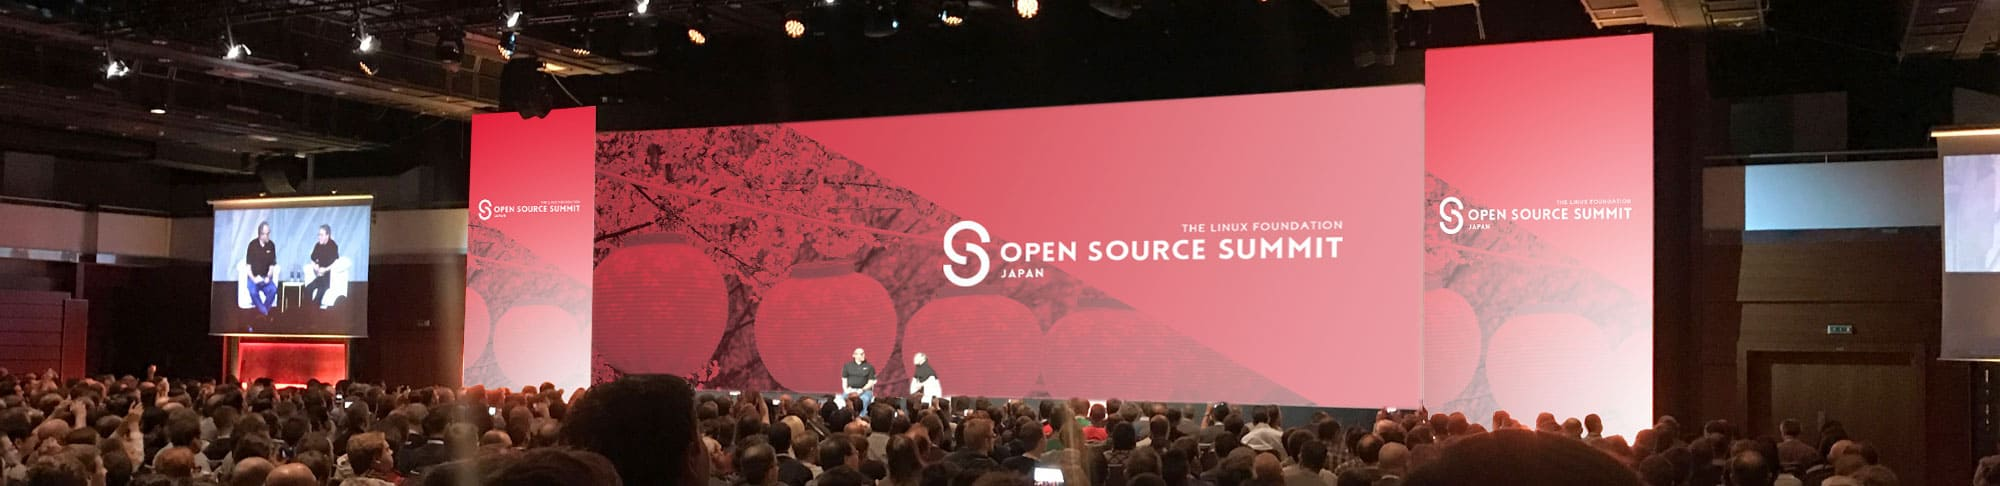 Prospus to Attend 2018 Open Source Summit in Japan